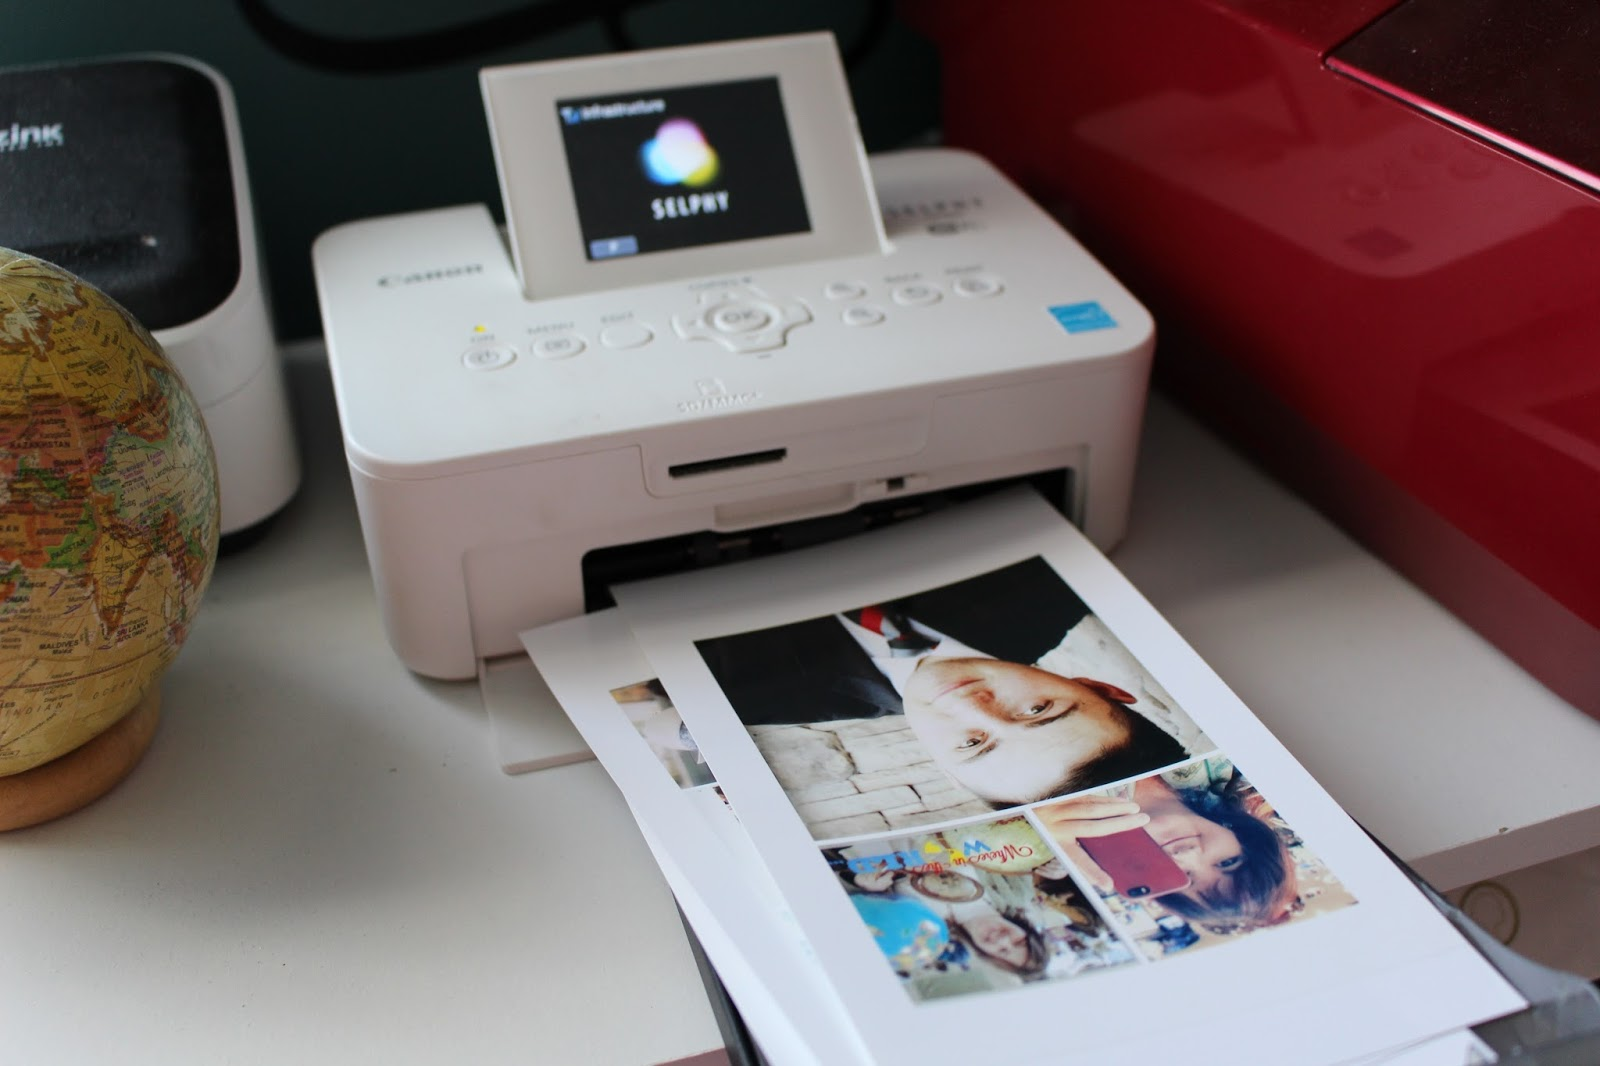 How to Print Instagram Photos at Home